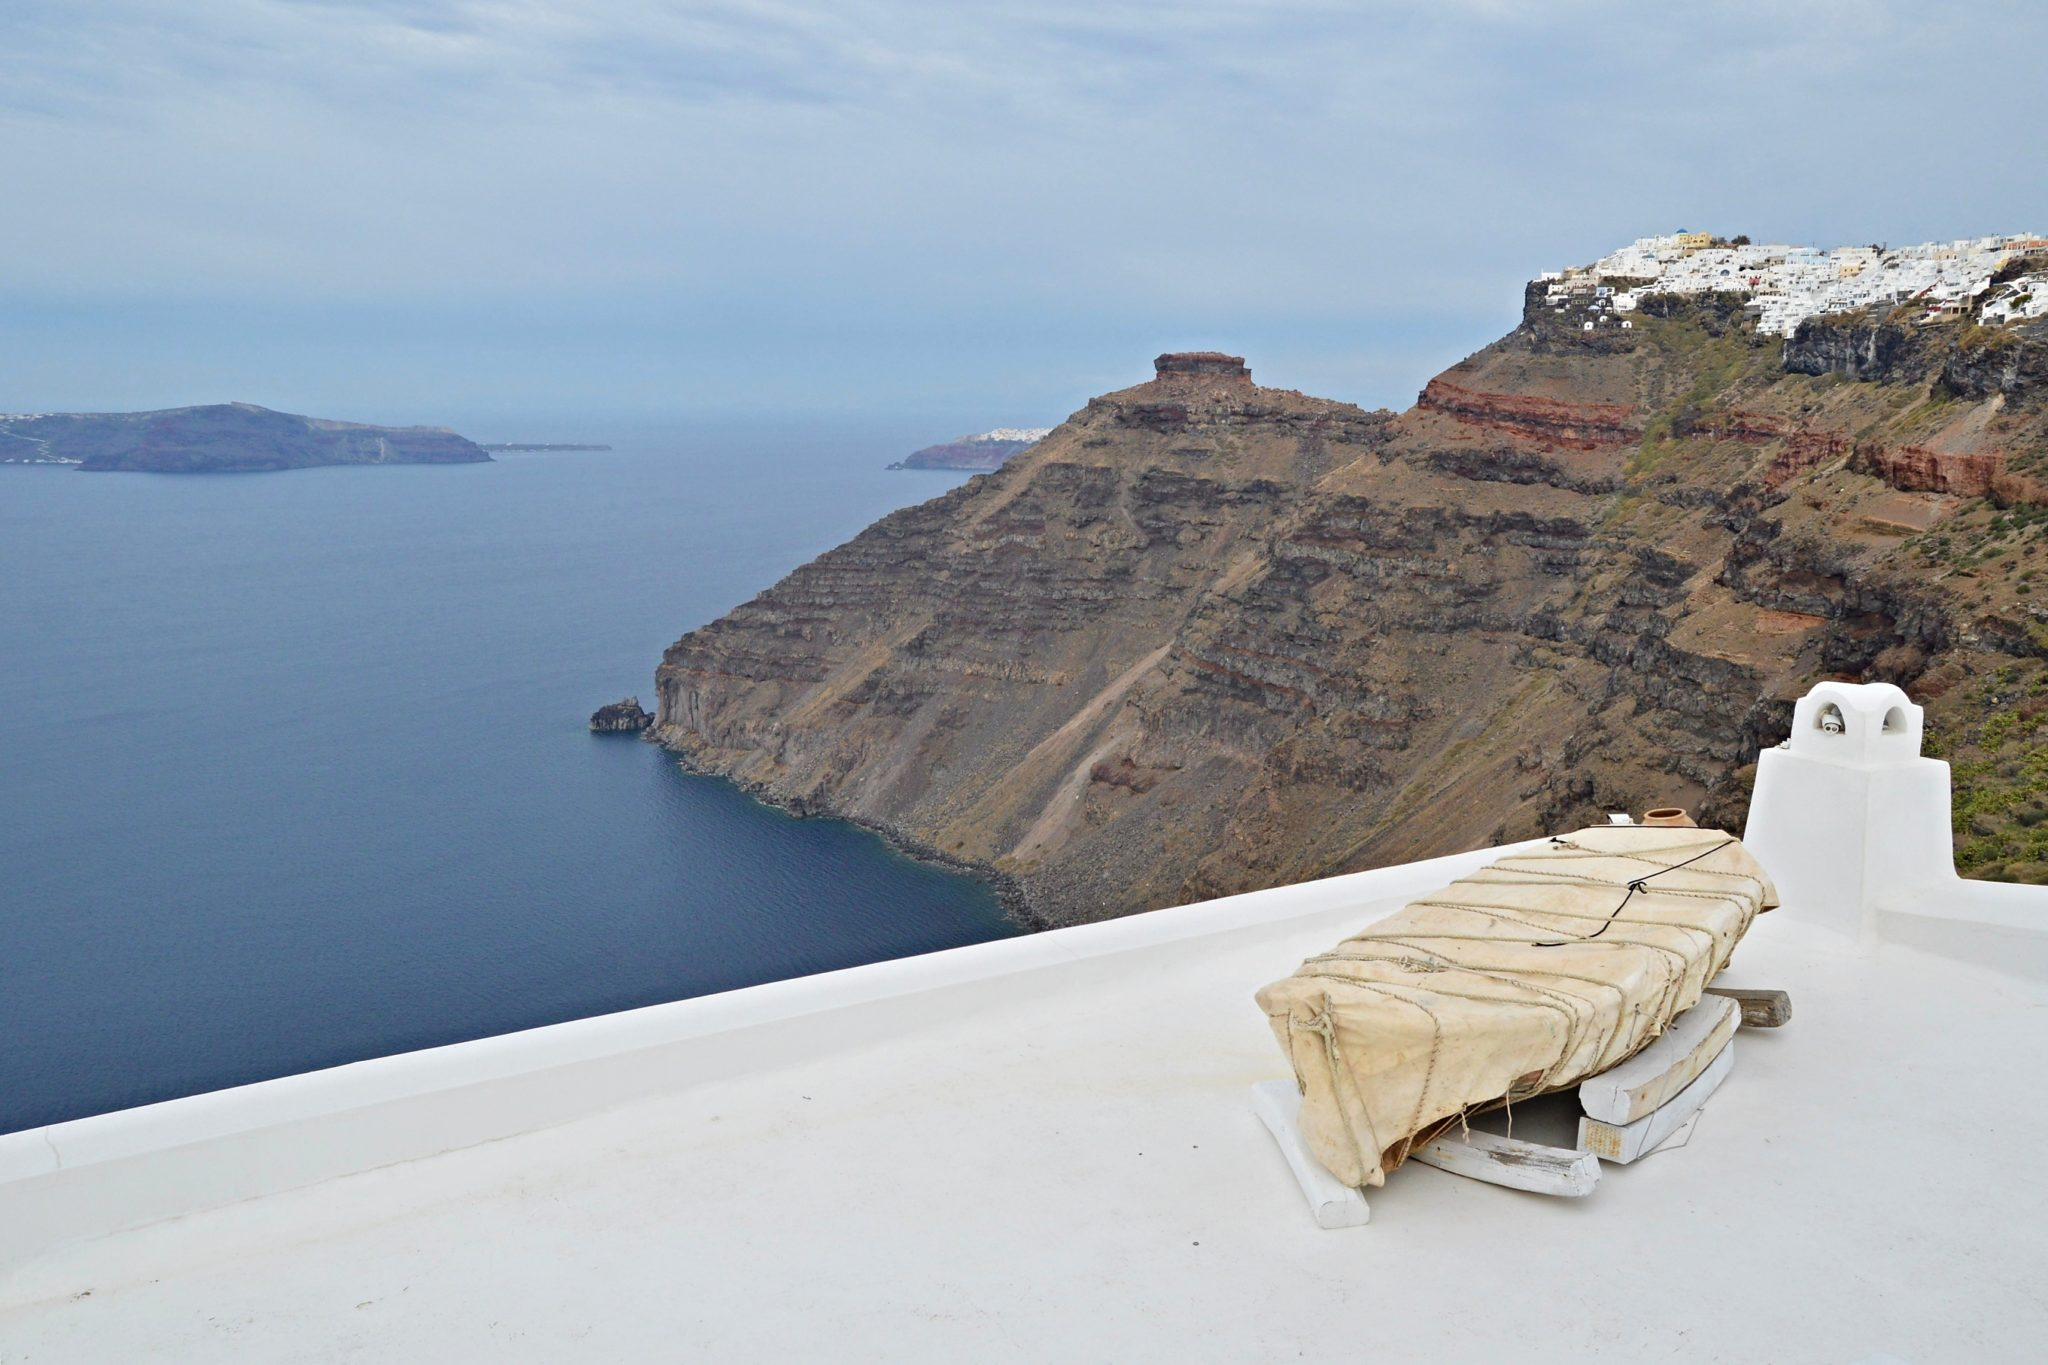 Looking towards the Skaros rock and Oia from Firostefani in Santorini